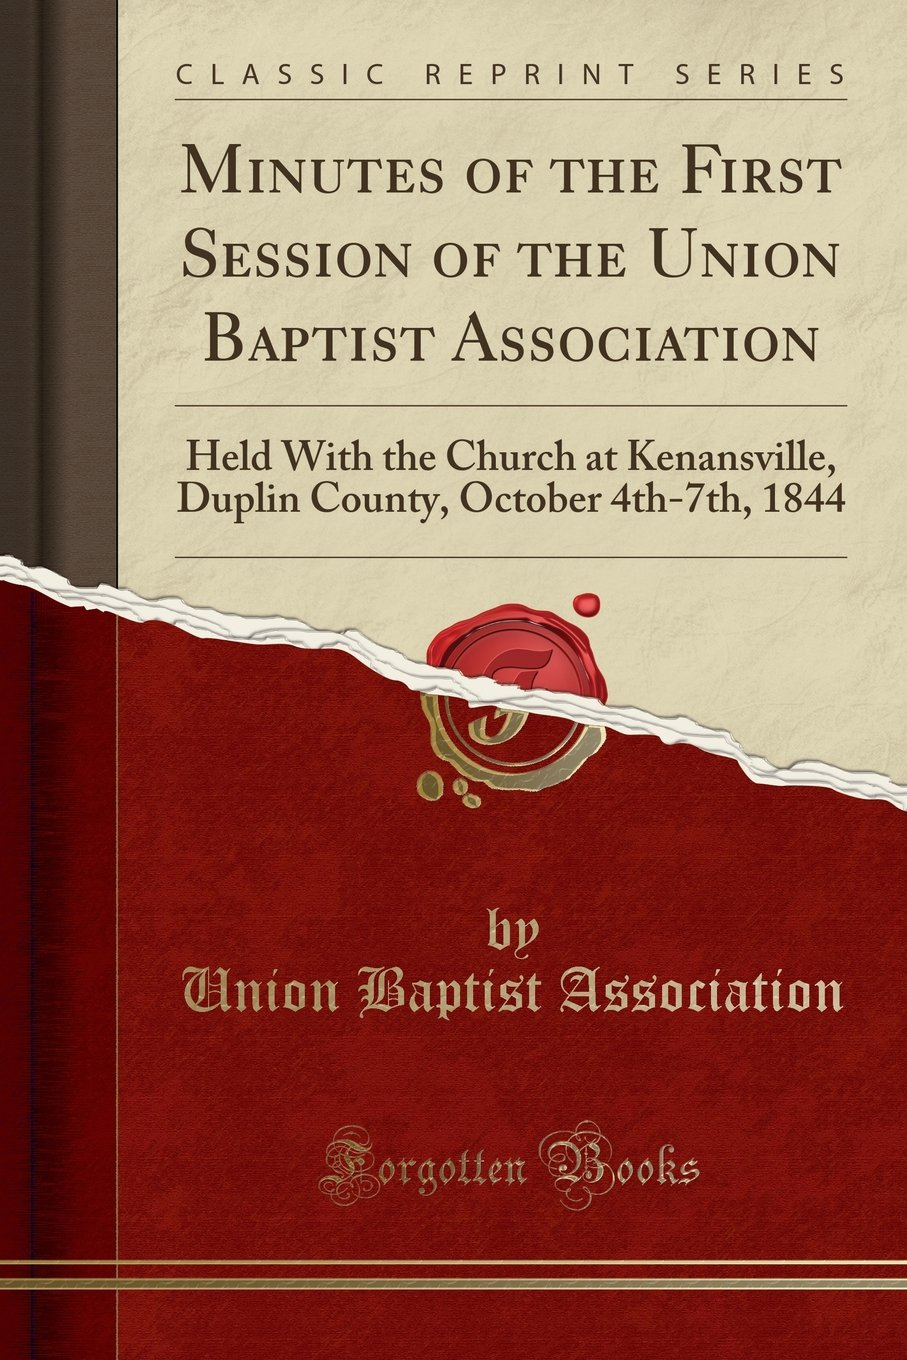 Minutes of the First Session of the Union Baptist Association: Held With the Church at Kenansville, Duplin County, October 4th-7th, 1844 (Classic Reprint) PDF